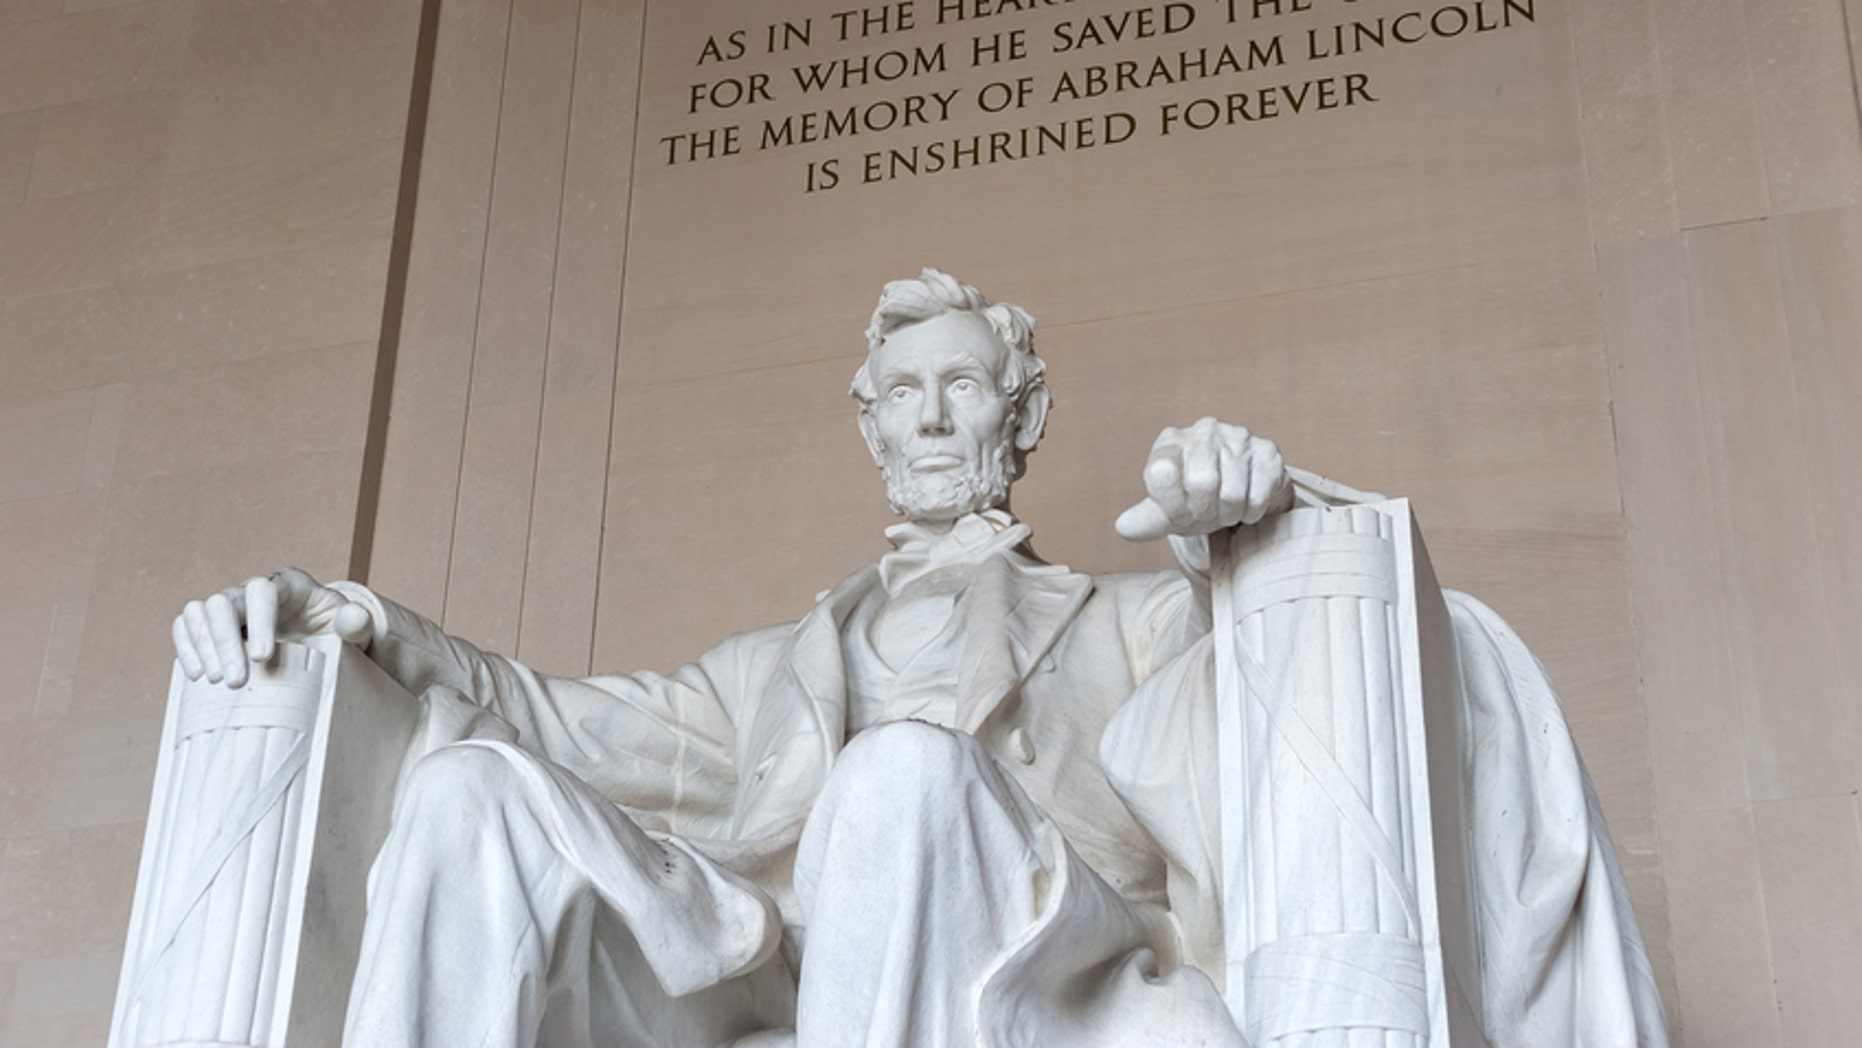 Abraham Lincoln Memorial in Washington DC, United States of America. National Landmark, famous tourist place